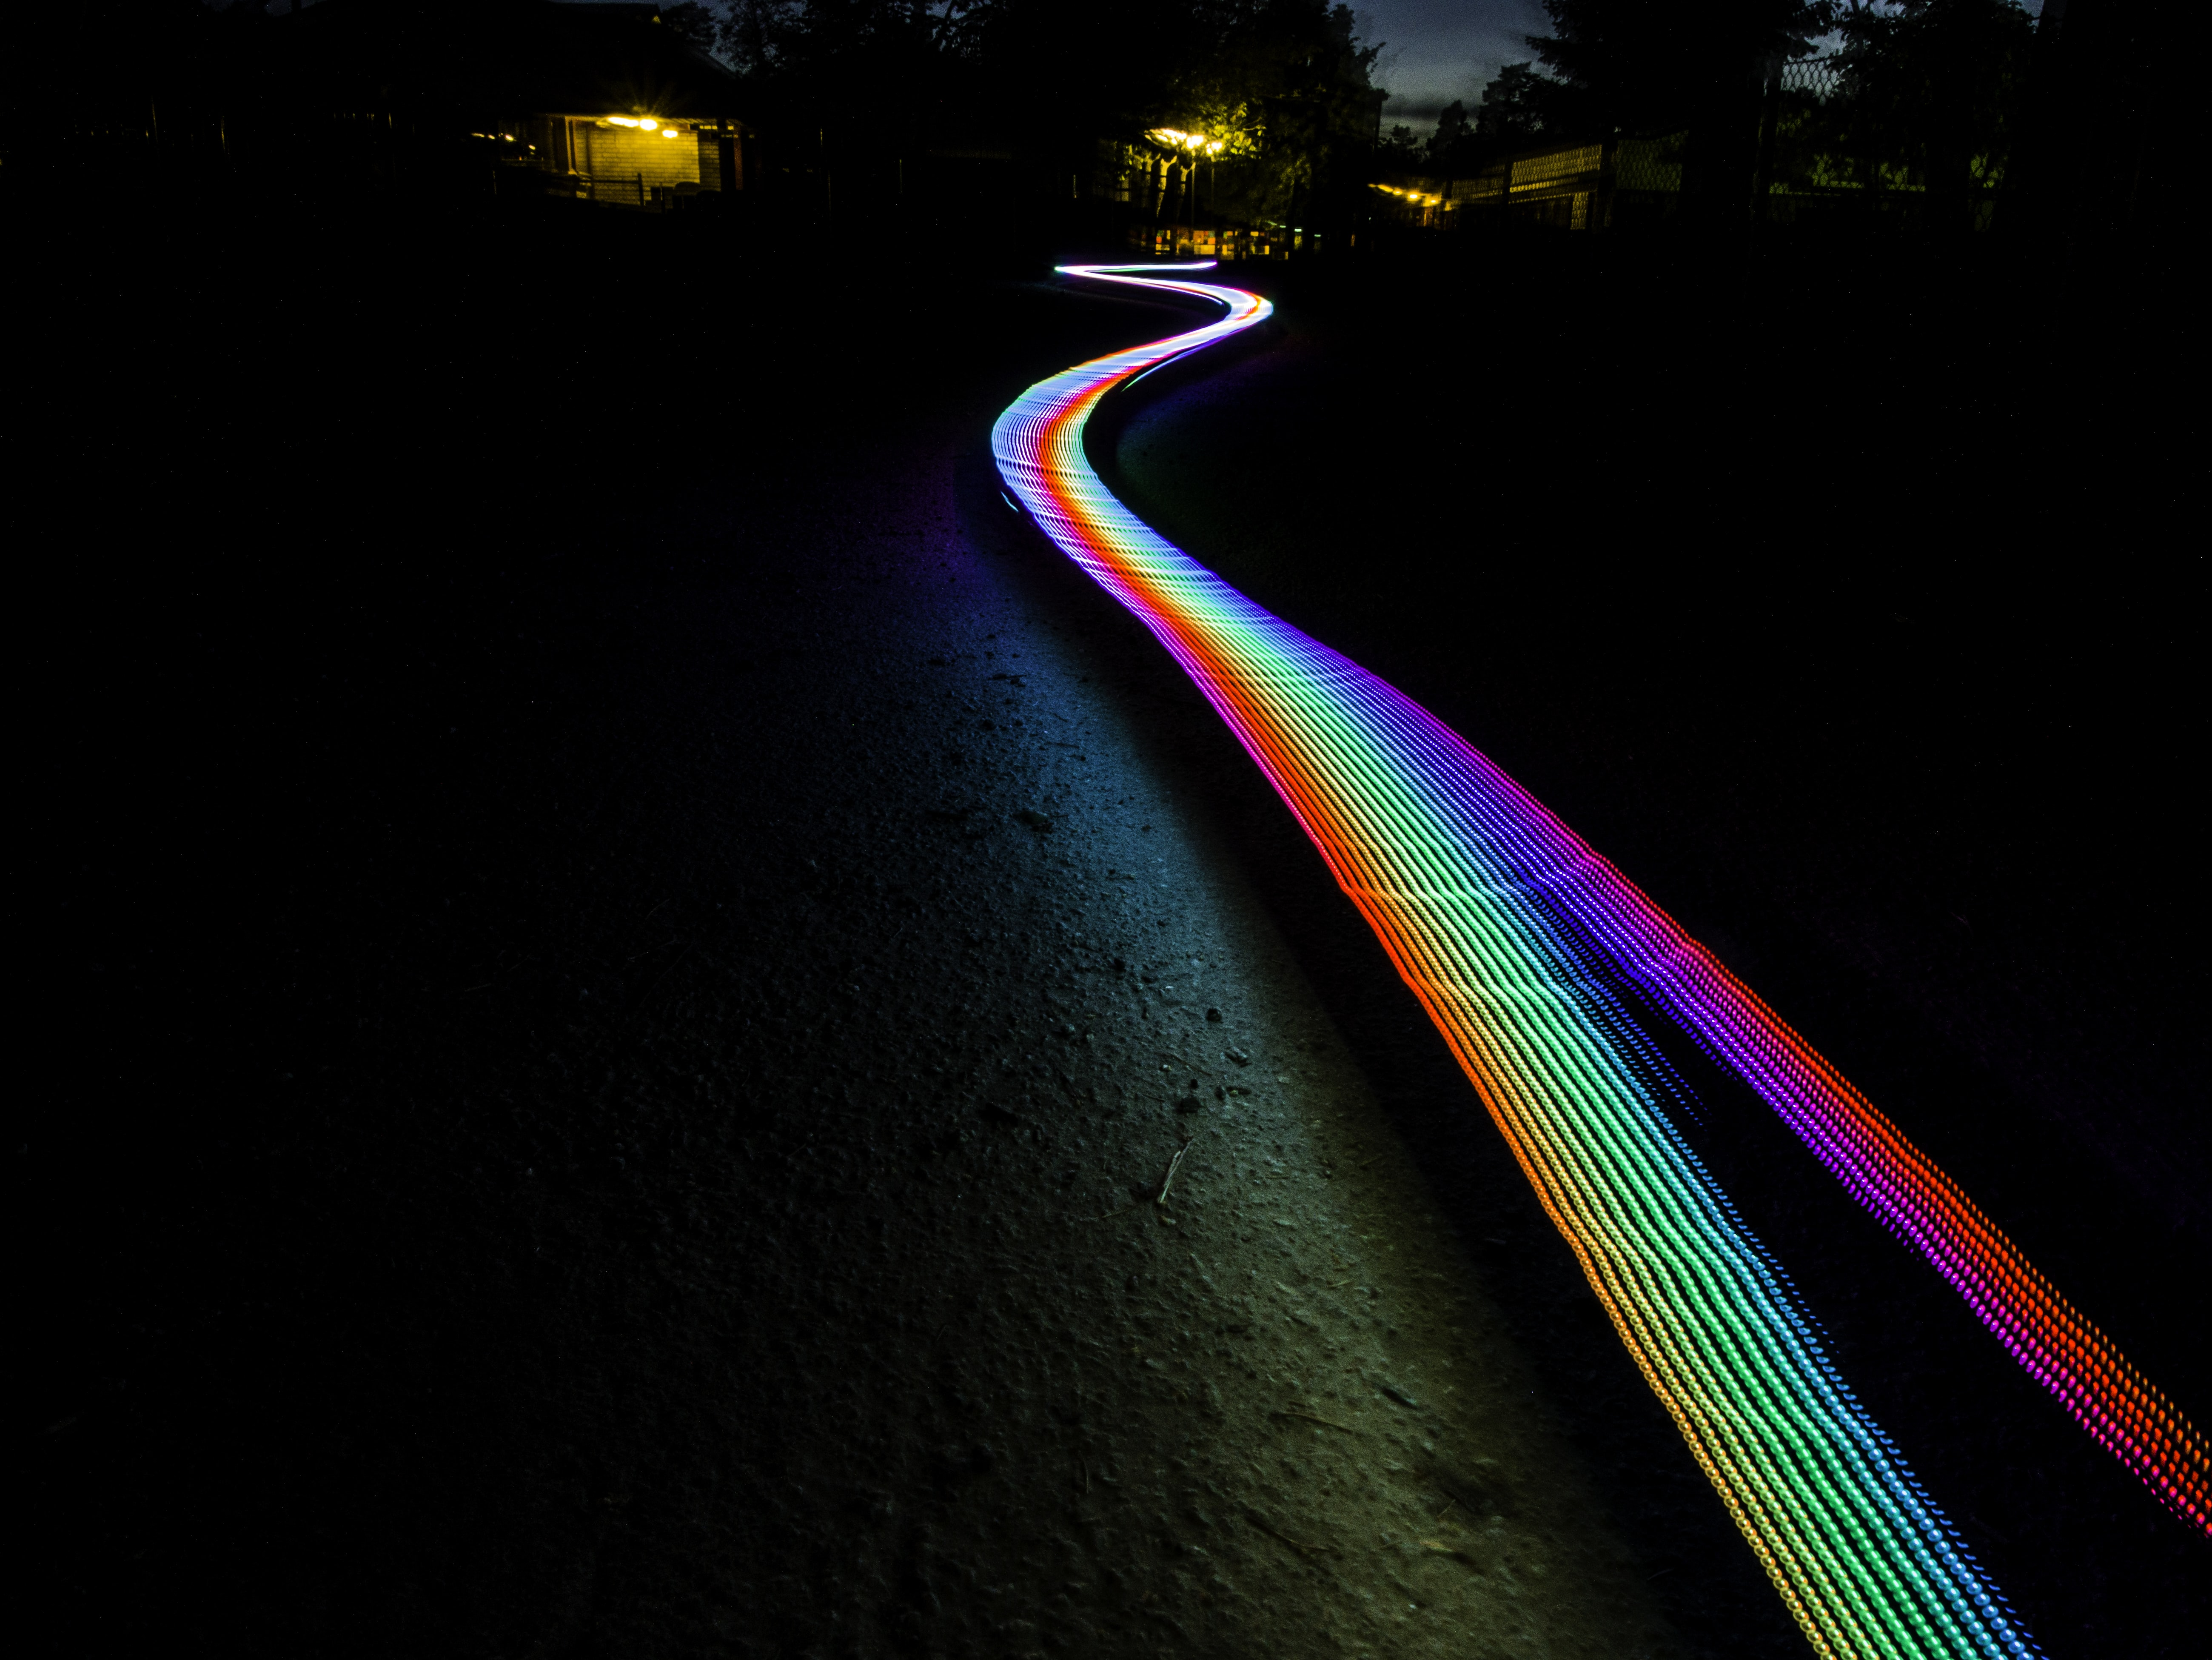 multicolored light passage in dark area